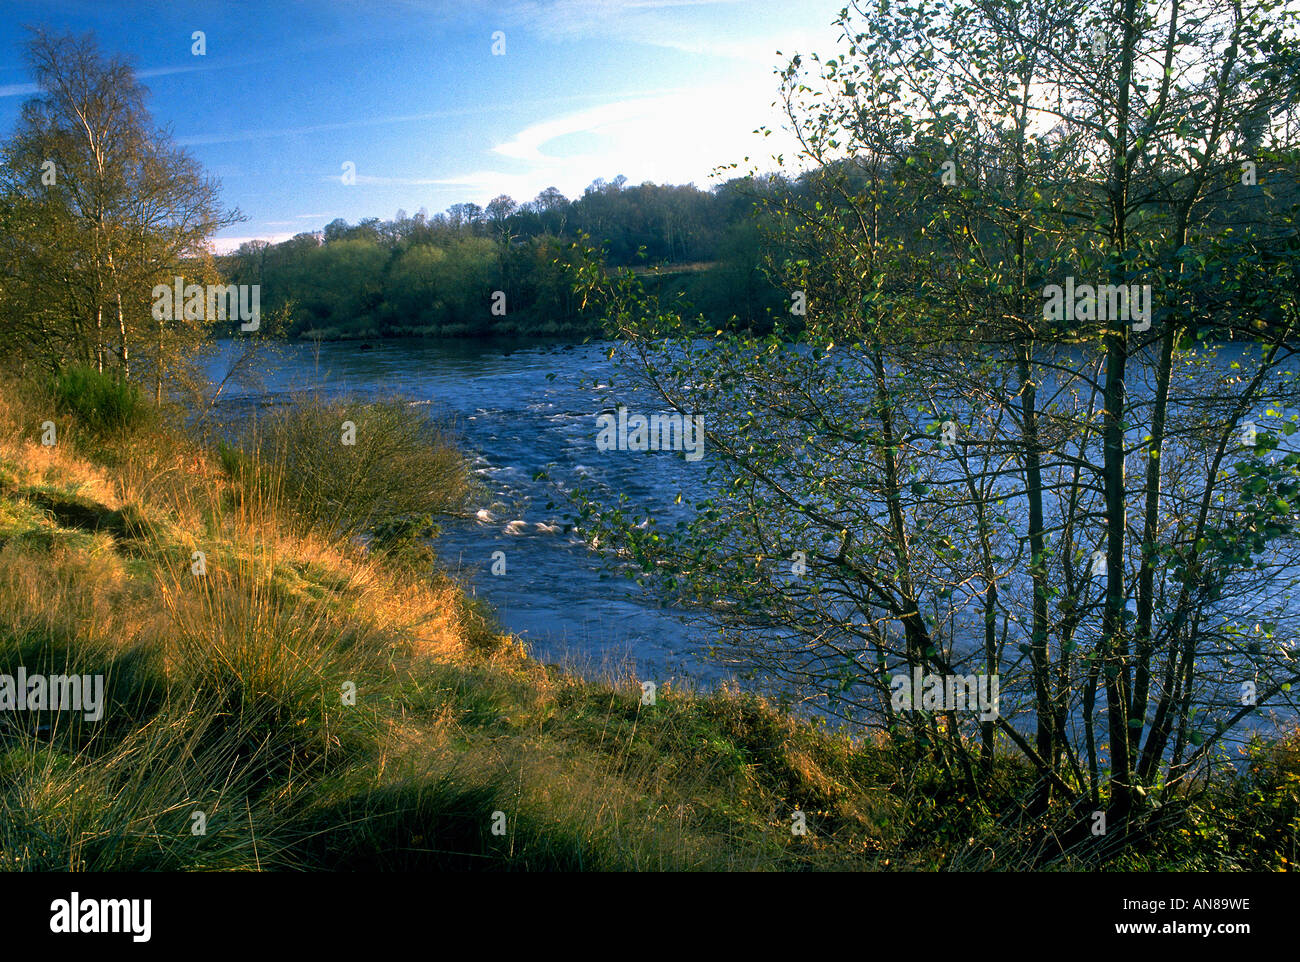 The River Tyne at Wylam - Stock Image